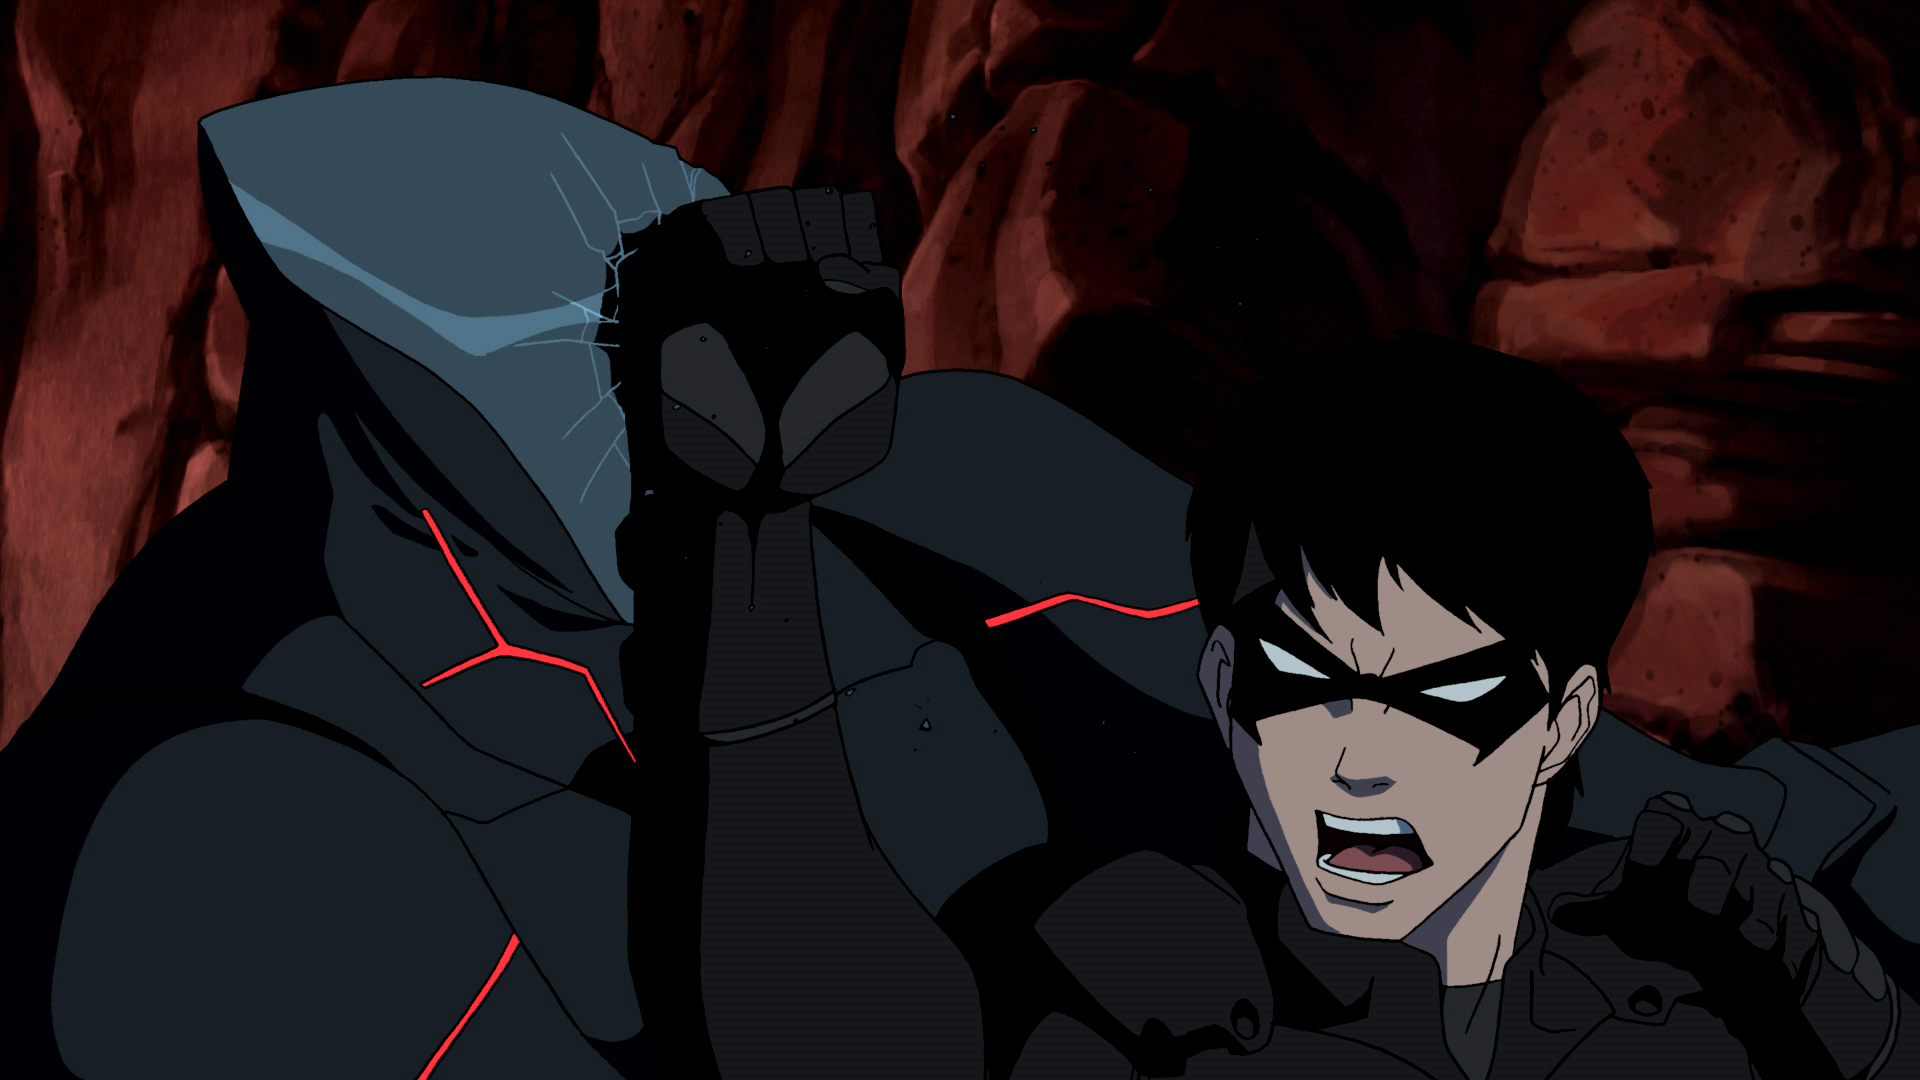 Index of /image/TV/News/02-Young Justice/Episodes/Season 2